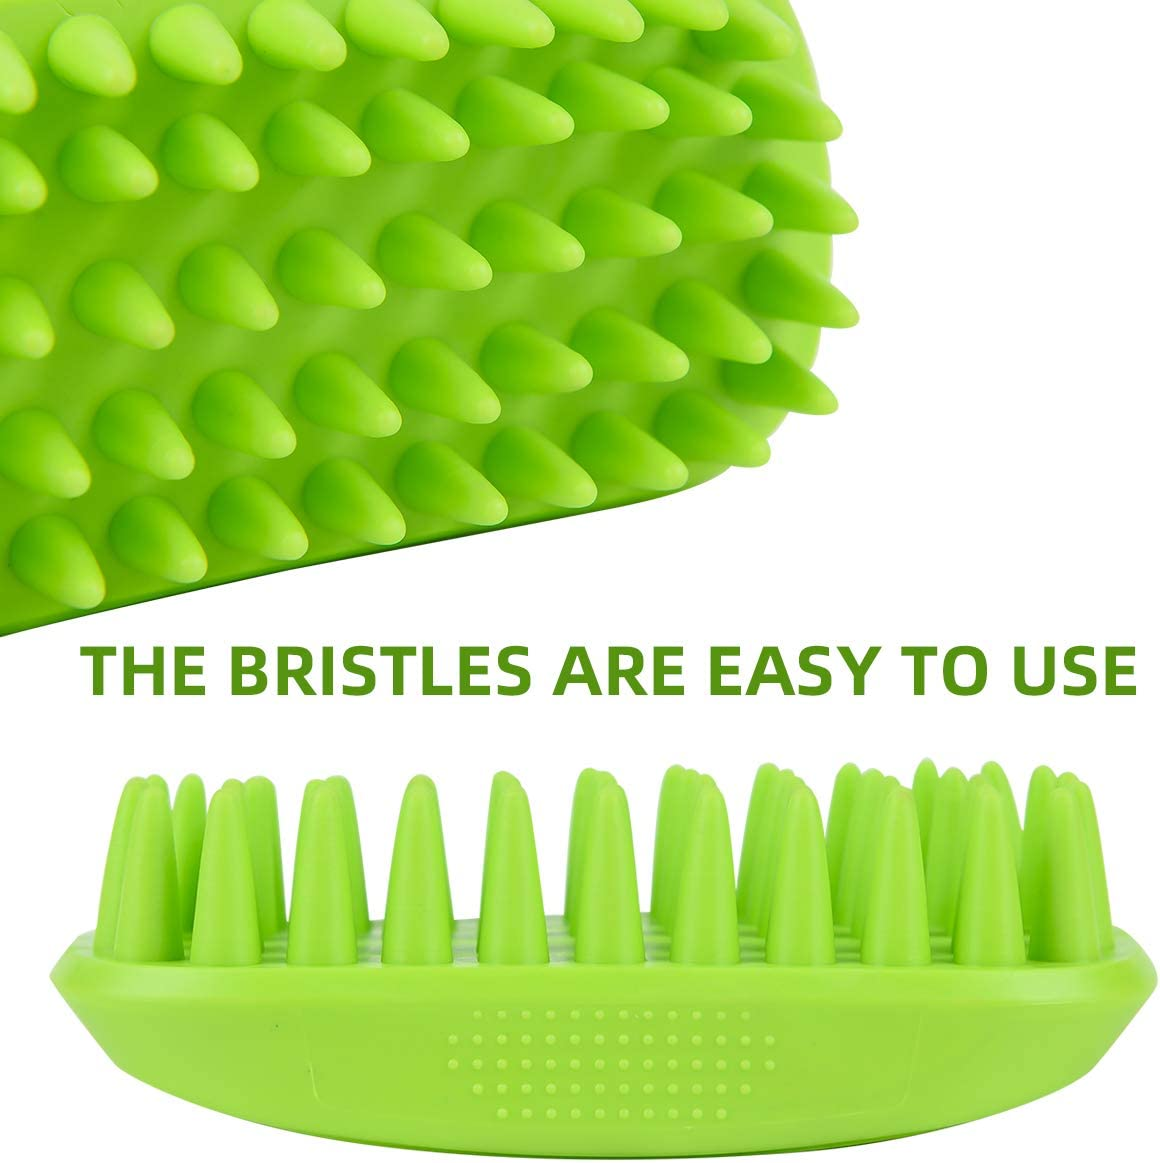 DYAprWu Silicone Pet Bath Brush Massage Grooming Comb for Long /& Short Hair Dogs Cats